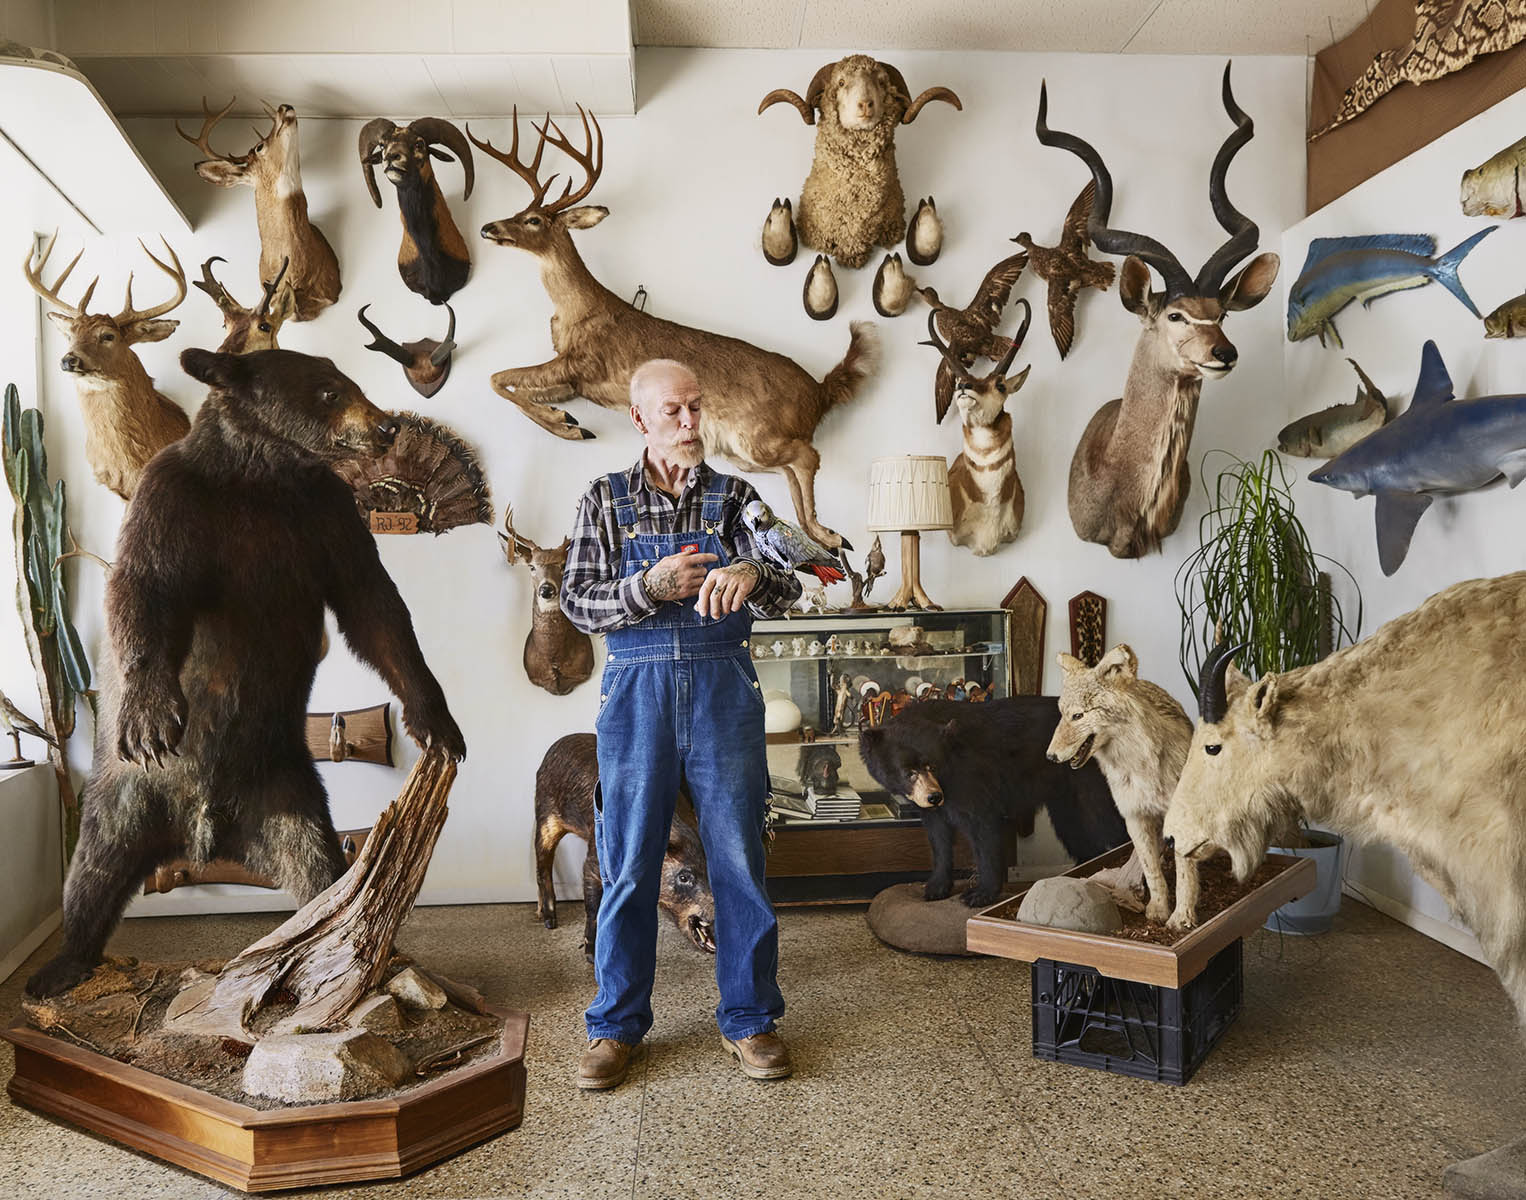 John The Taxidermist